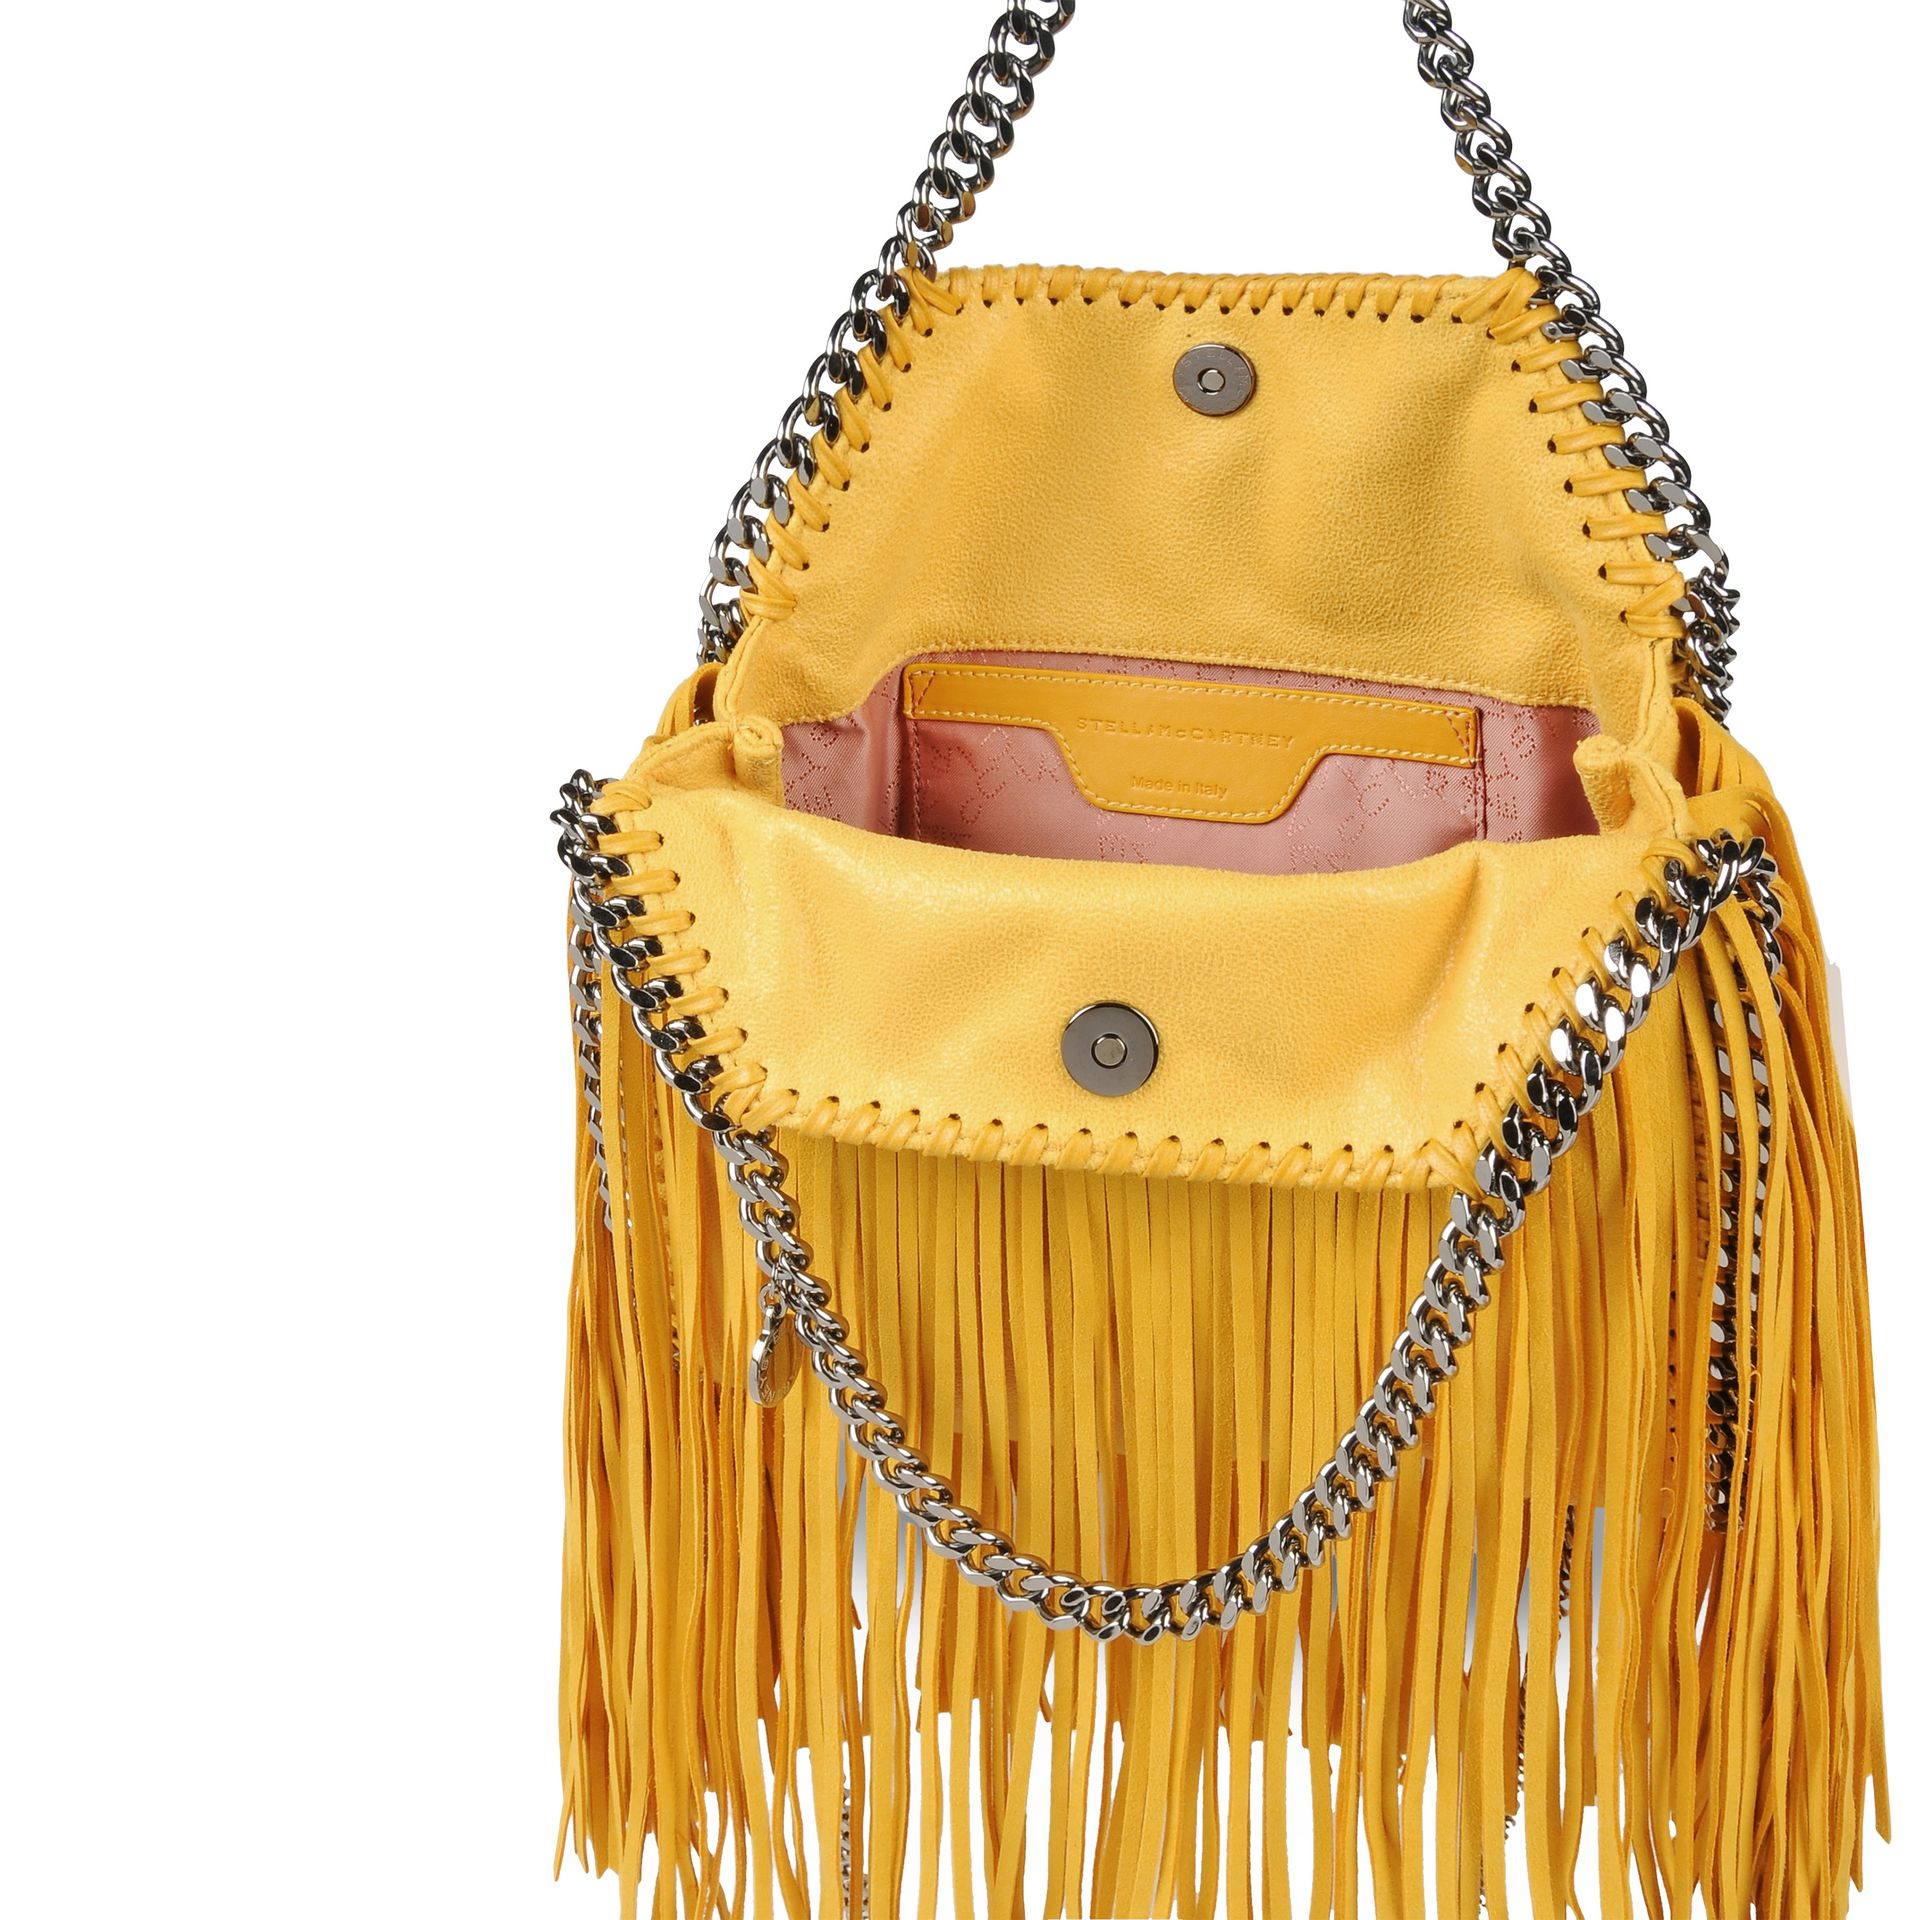 Lyst - Stella McCartney Falabella Shaggy Deer Fringed Mini Tote in ... a3f63840b6